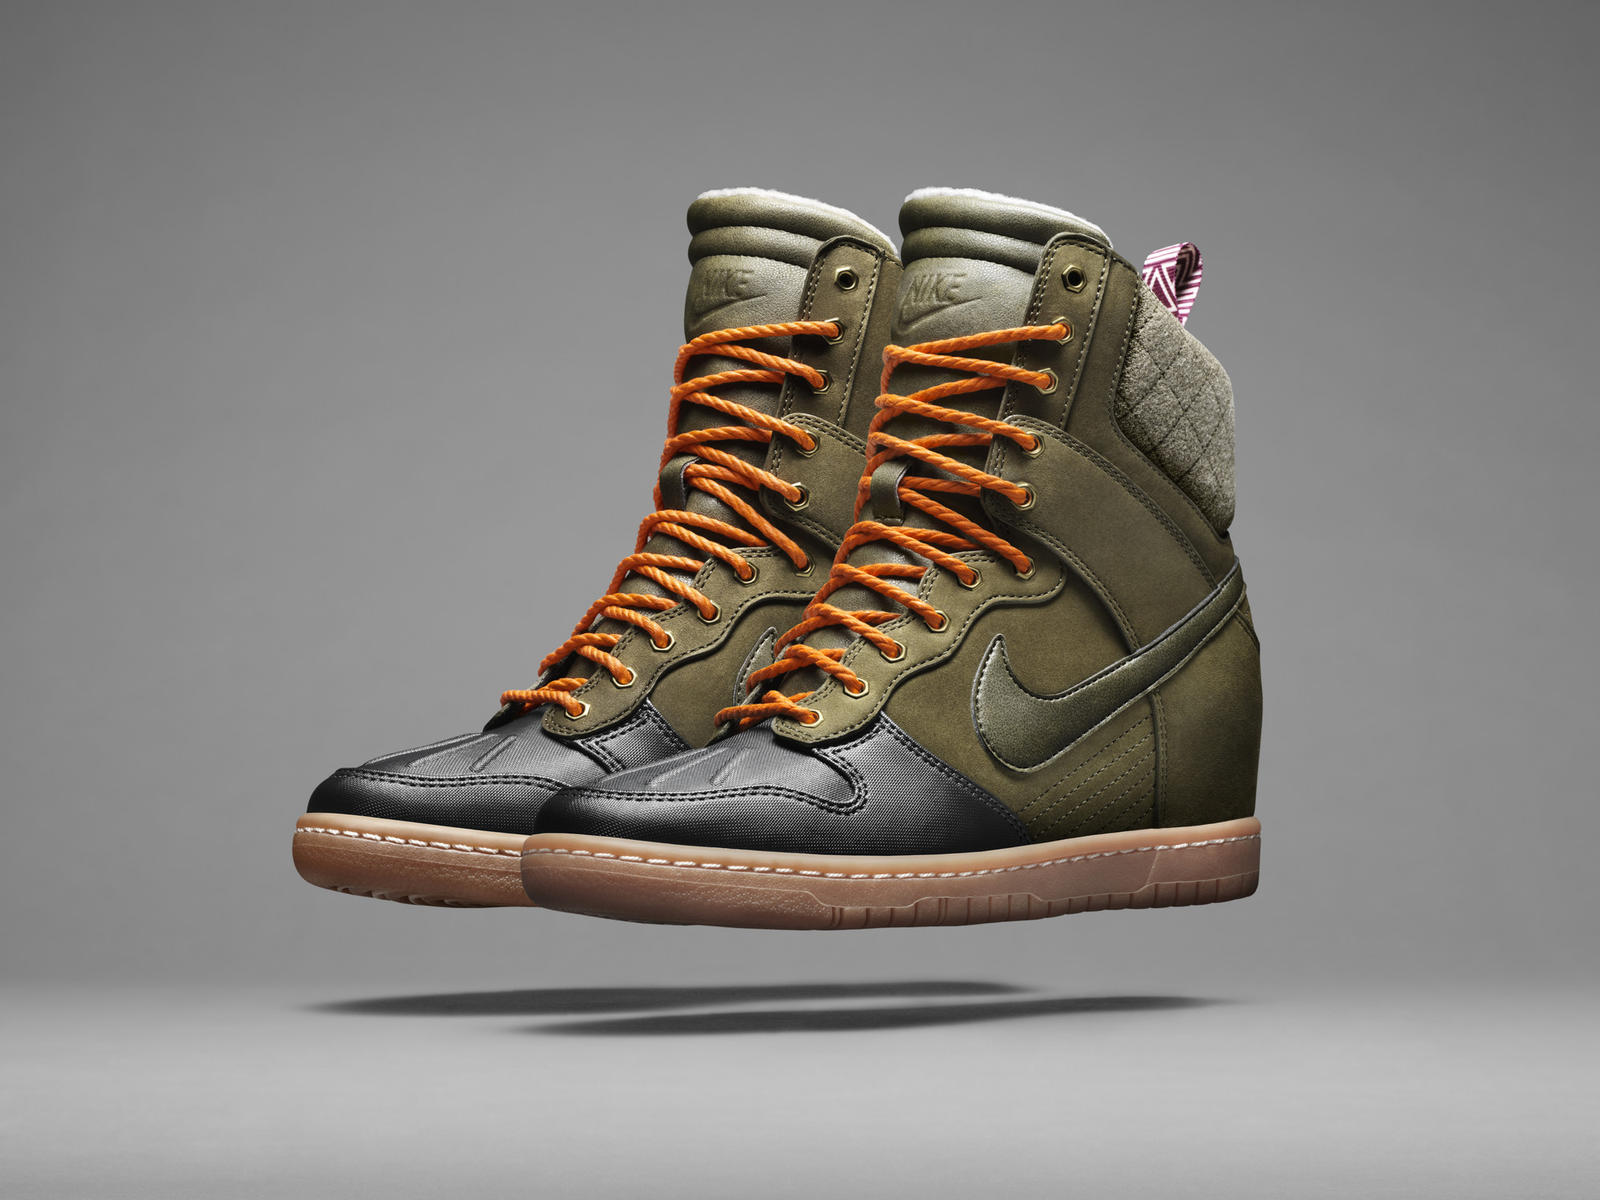 quality design fafed b8f97 ... High Premium GS ... nike dunk boots on sale OFF62% Discounts . ...